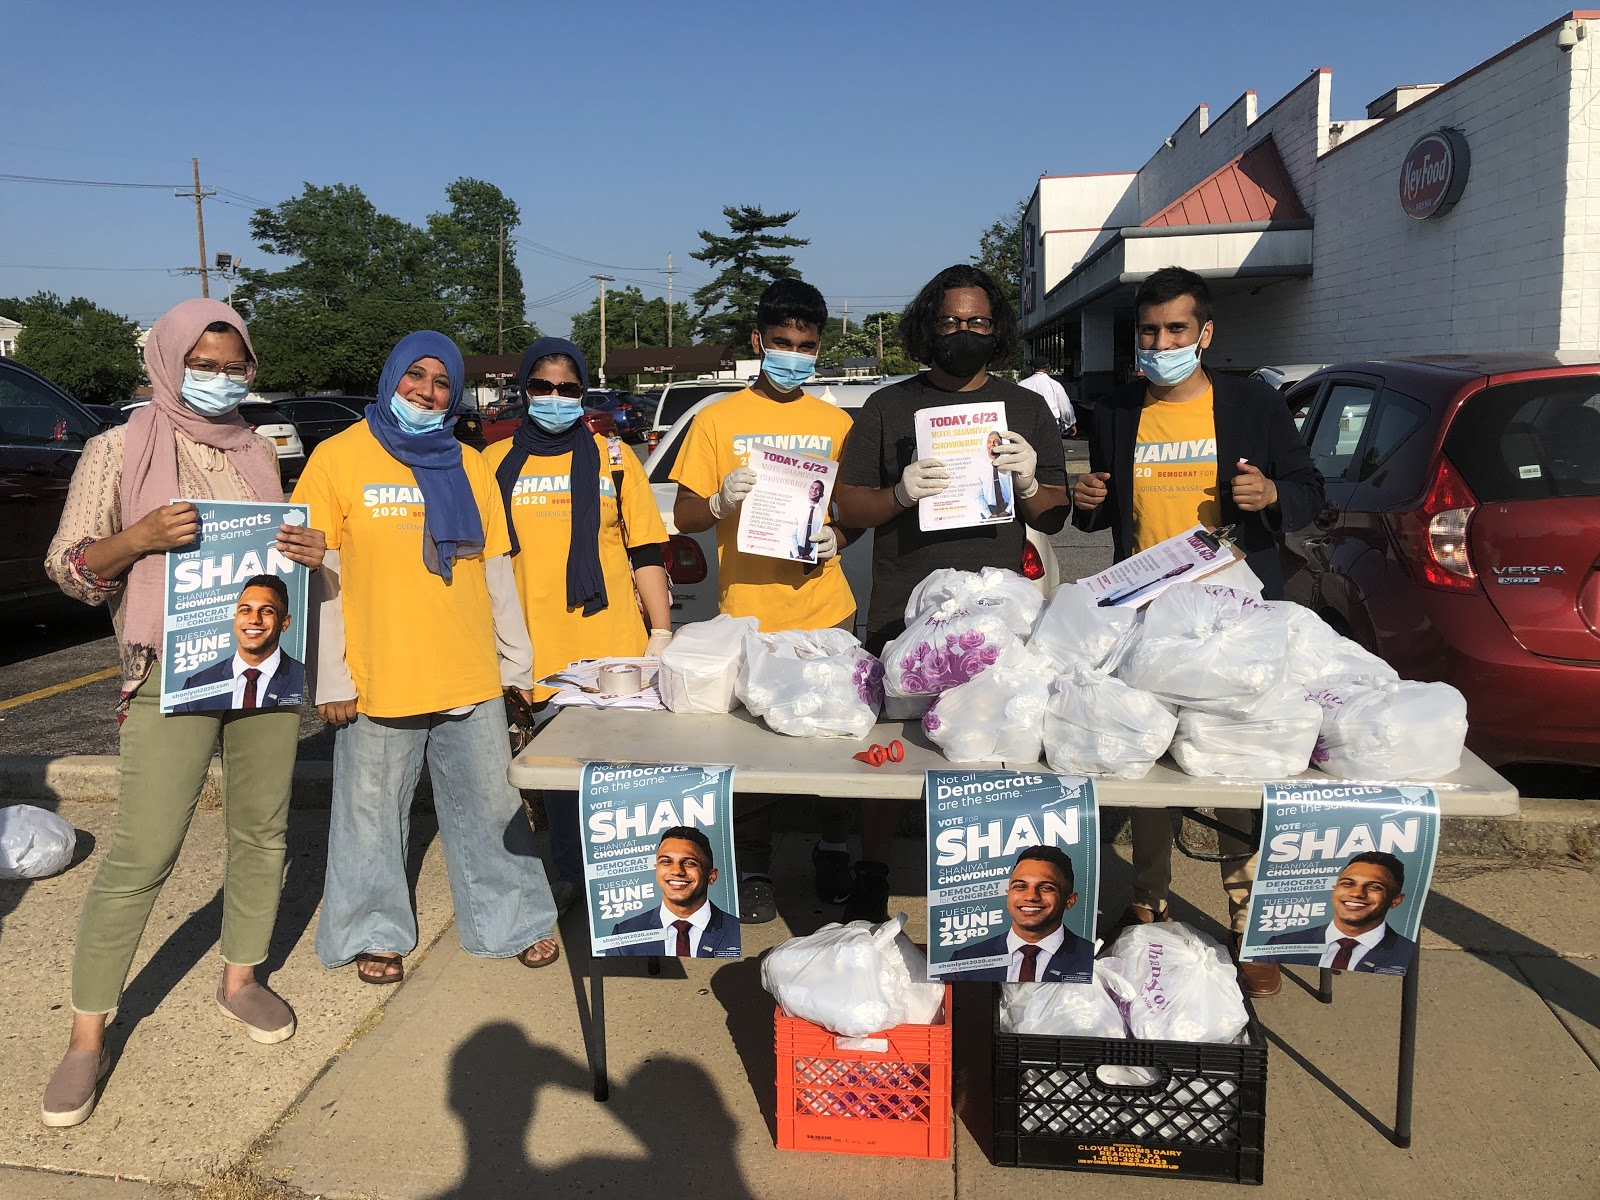 Volunteers for Long Island south Asian congressional candidate Shaniyat Chowdhury hand out gyros outside the legally mandated distance from a polling site in June. Photograph: Raihan Faroqui